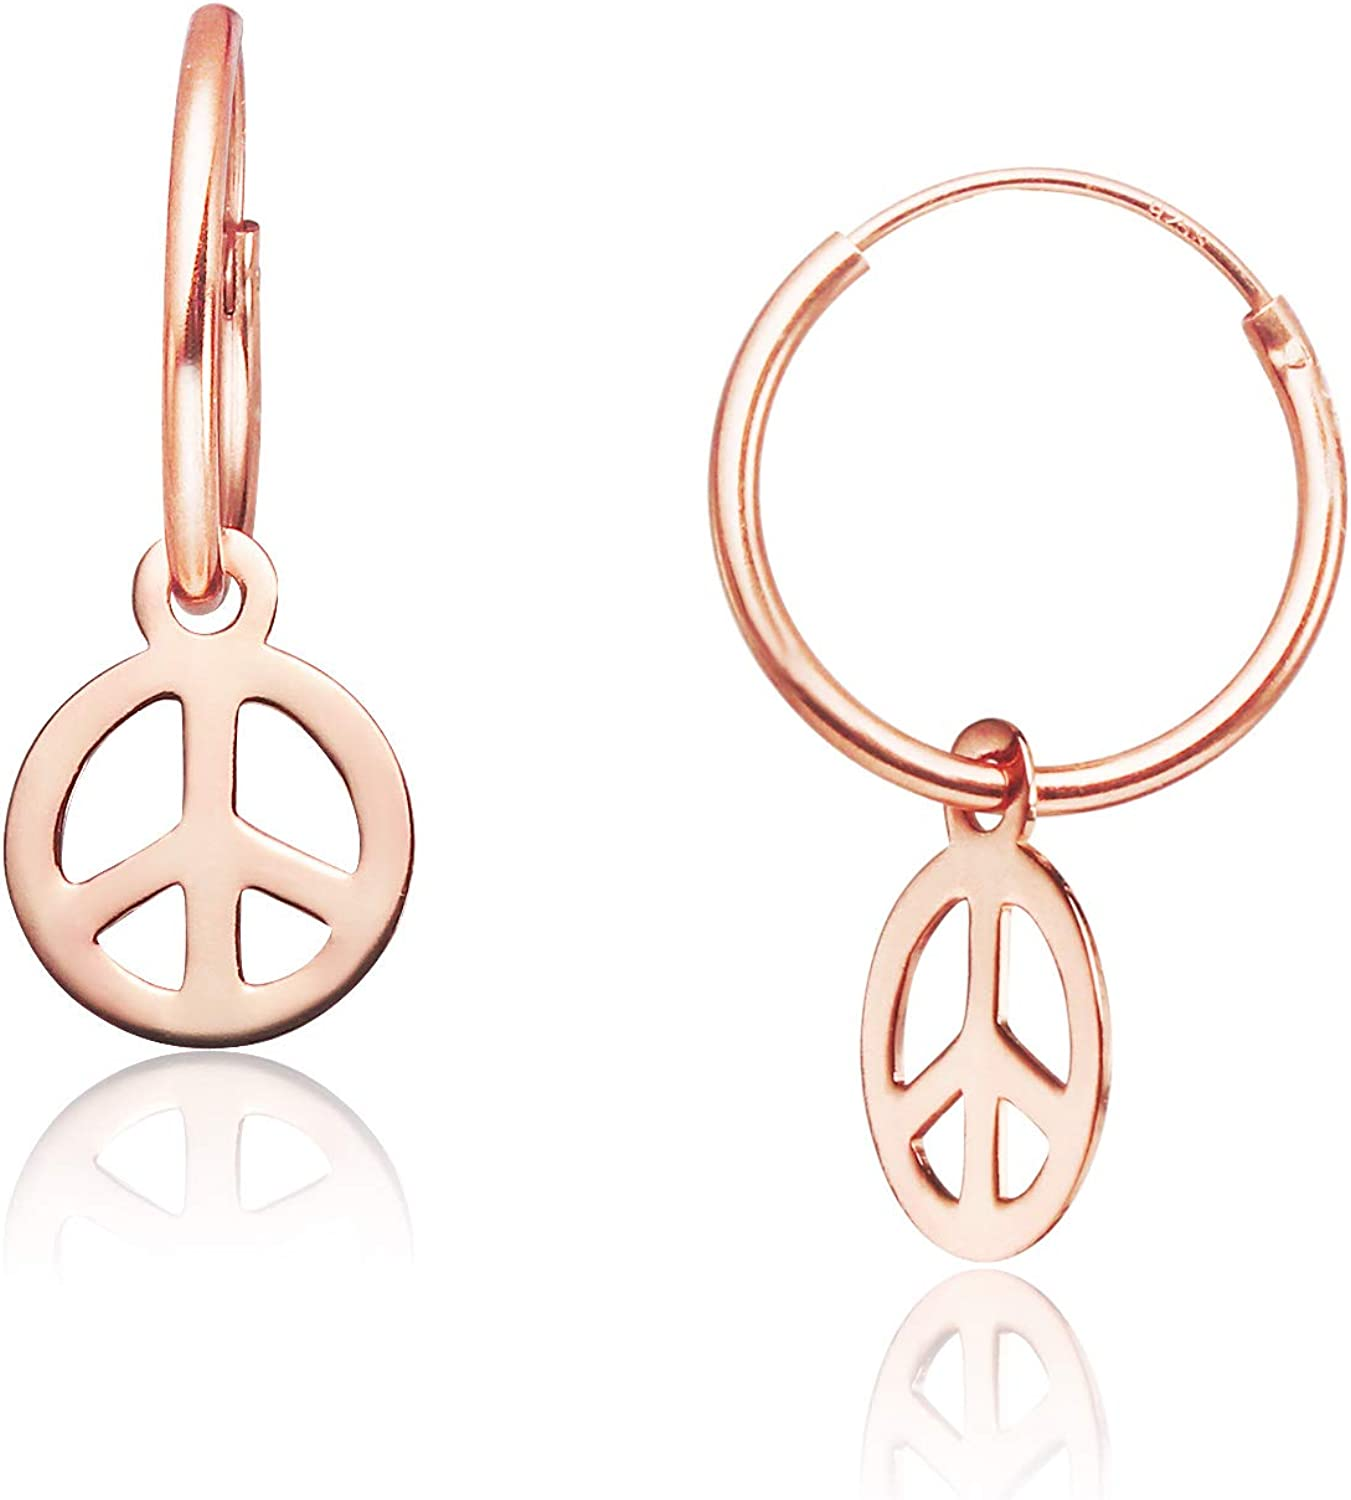 Big Apple Hoops - High Polished Peace Sign Charm Hoop Earrings Made from Genuine 925 Sterling Silver in 3 Color Rose, Silver or Gold with Protective Electrocoated Finish for Maximum Anti-Tarnish